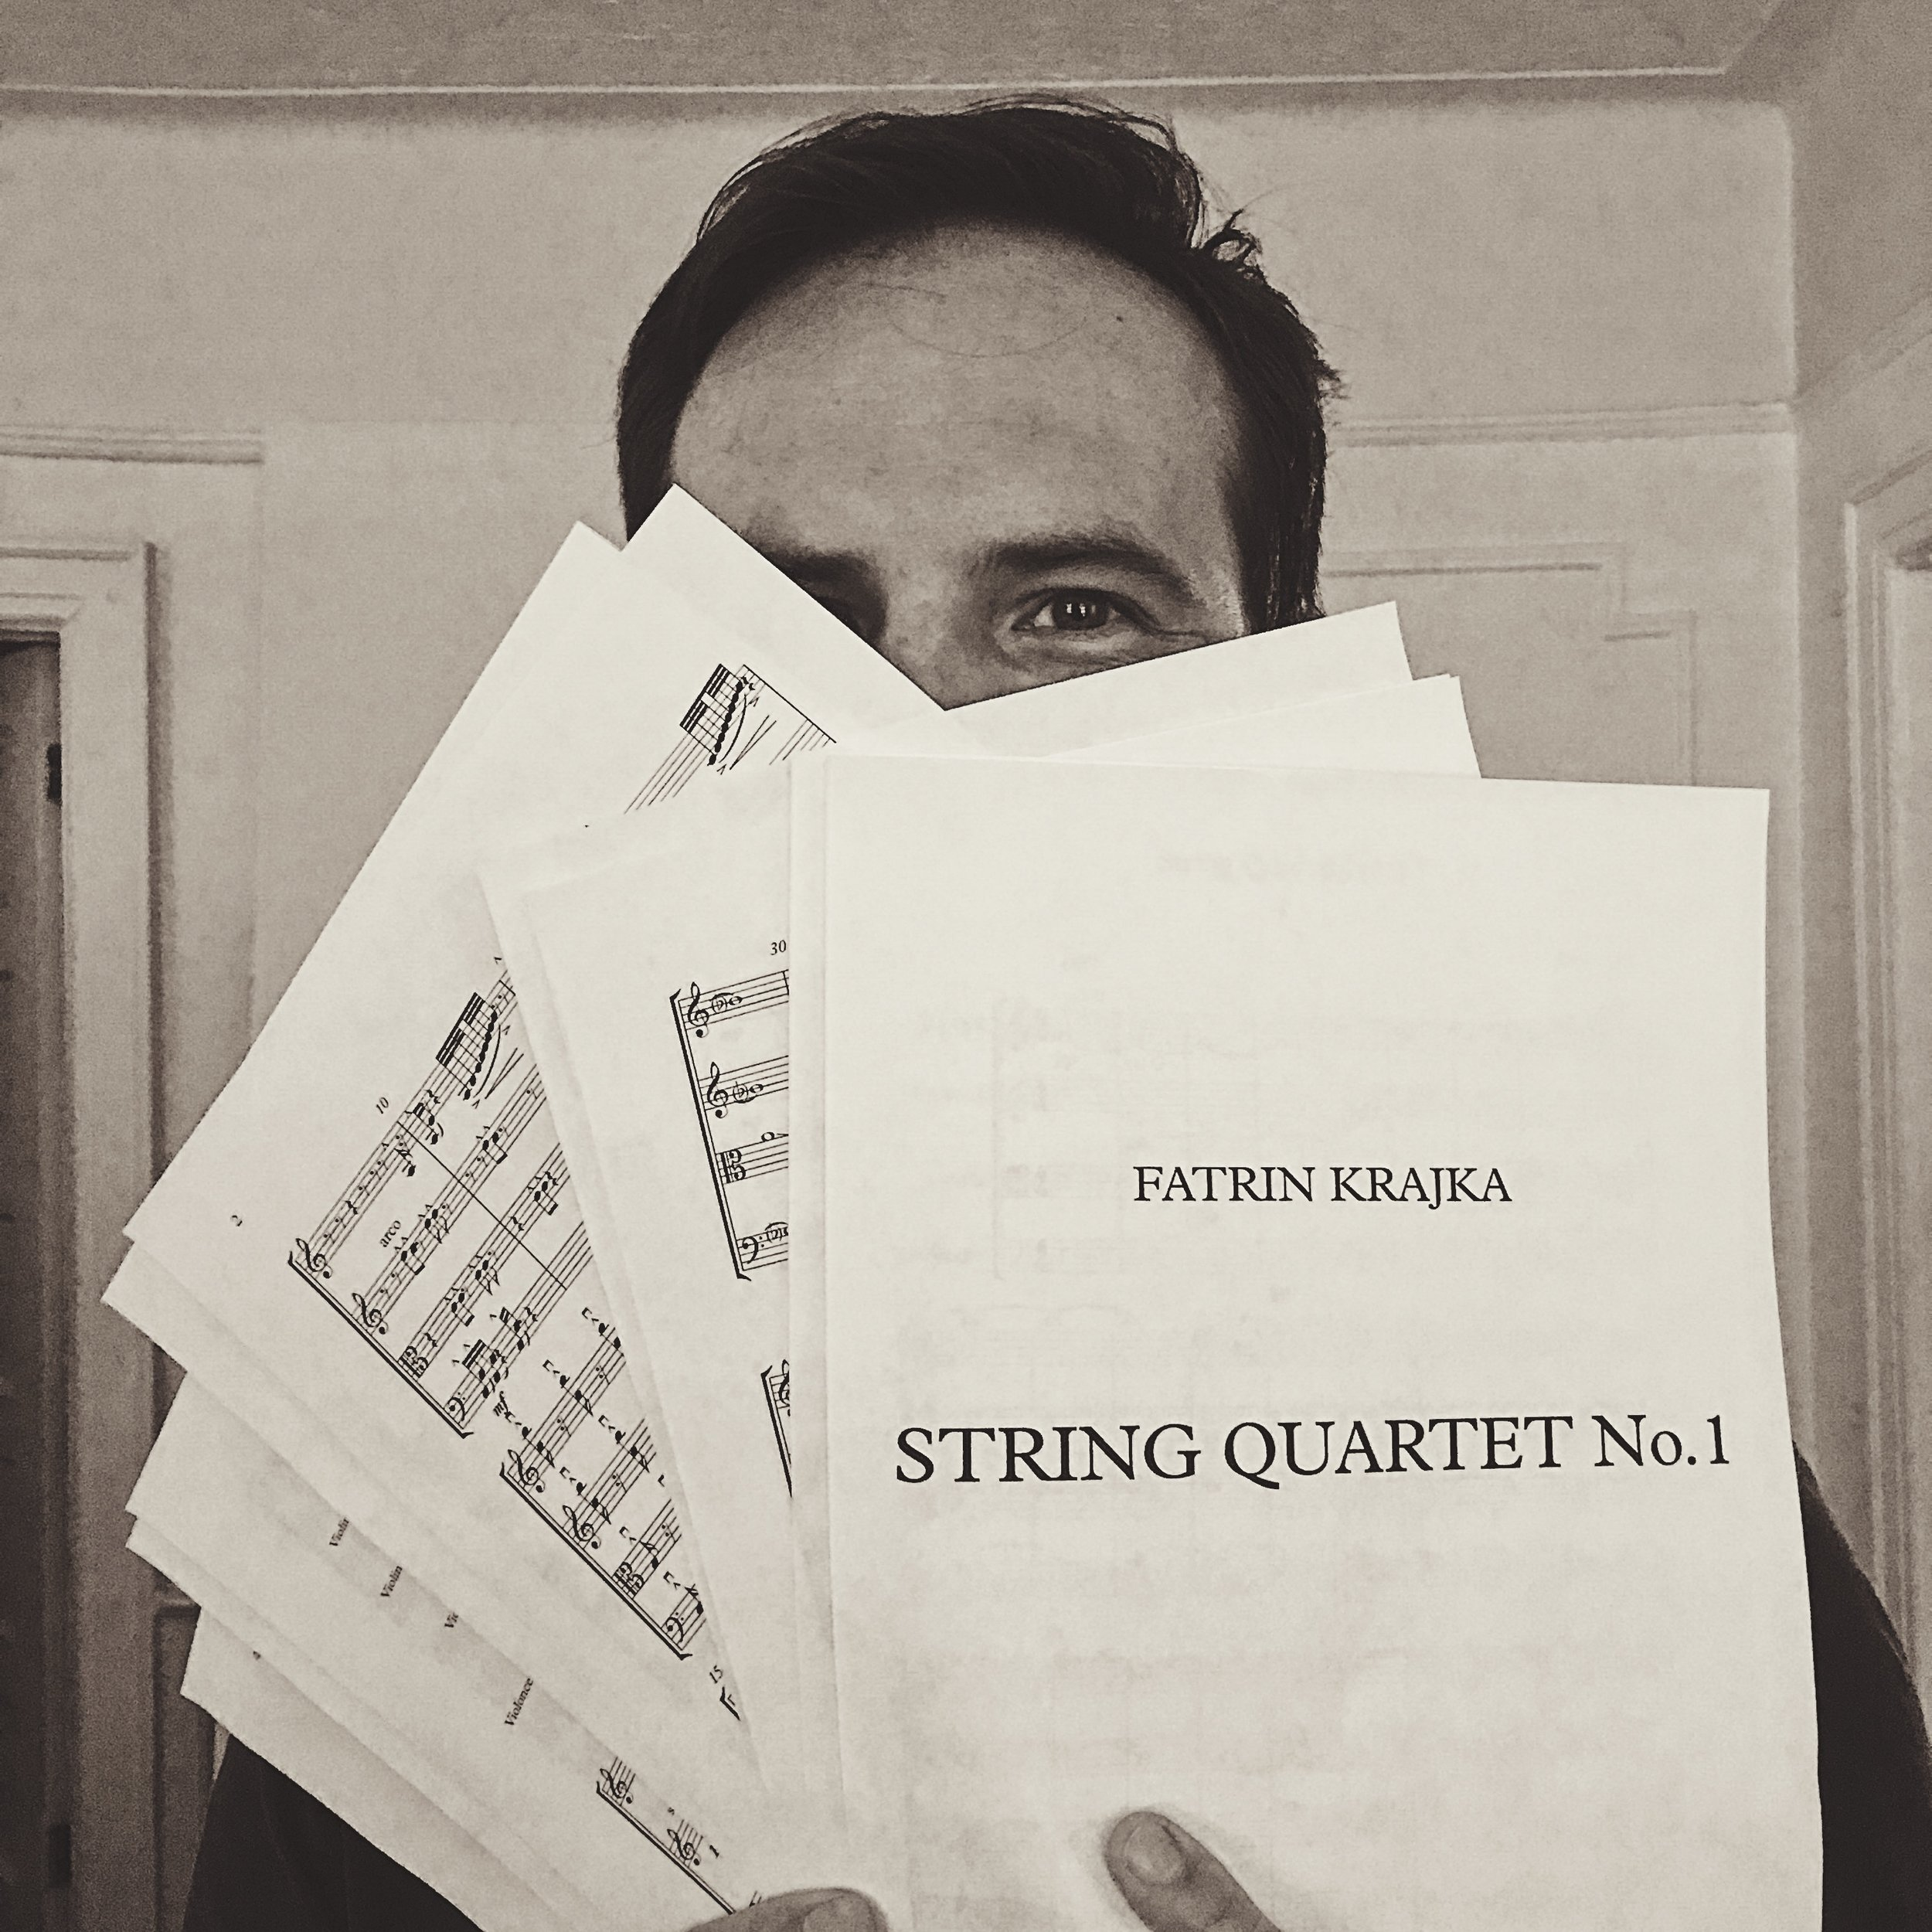 Excited to have finished composing my 1st String Quartet - September 6th 2018